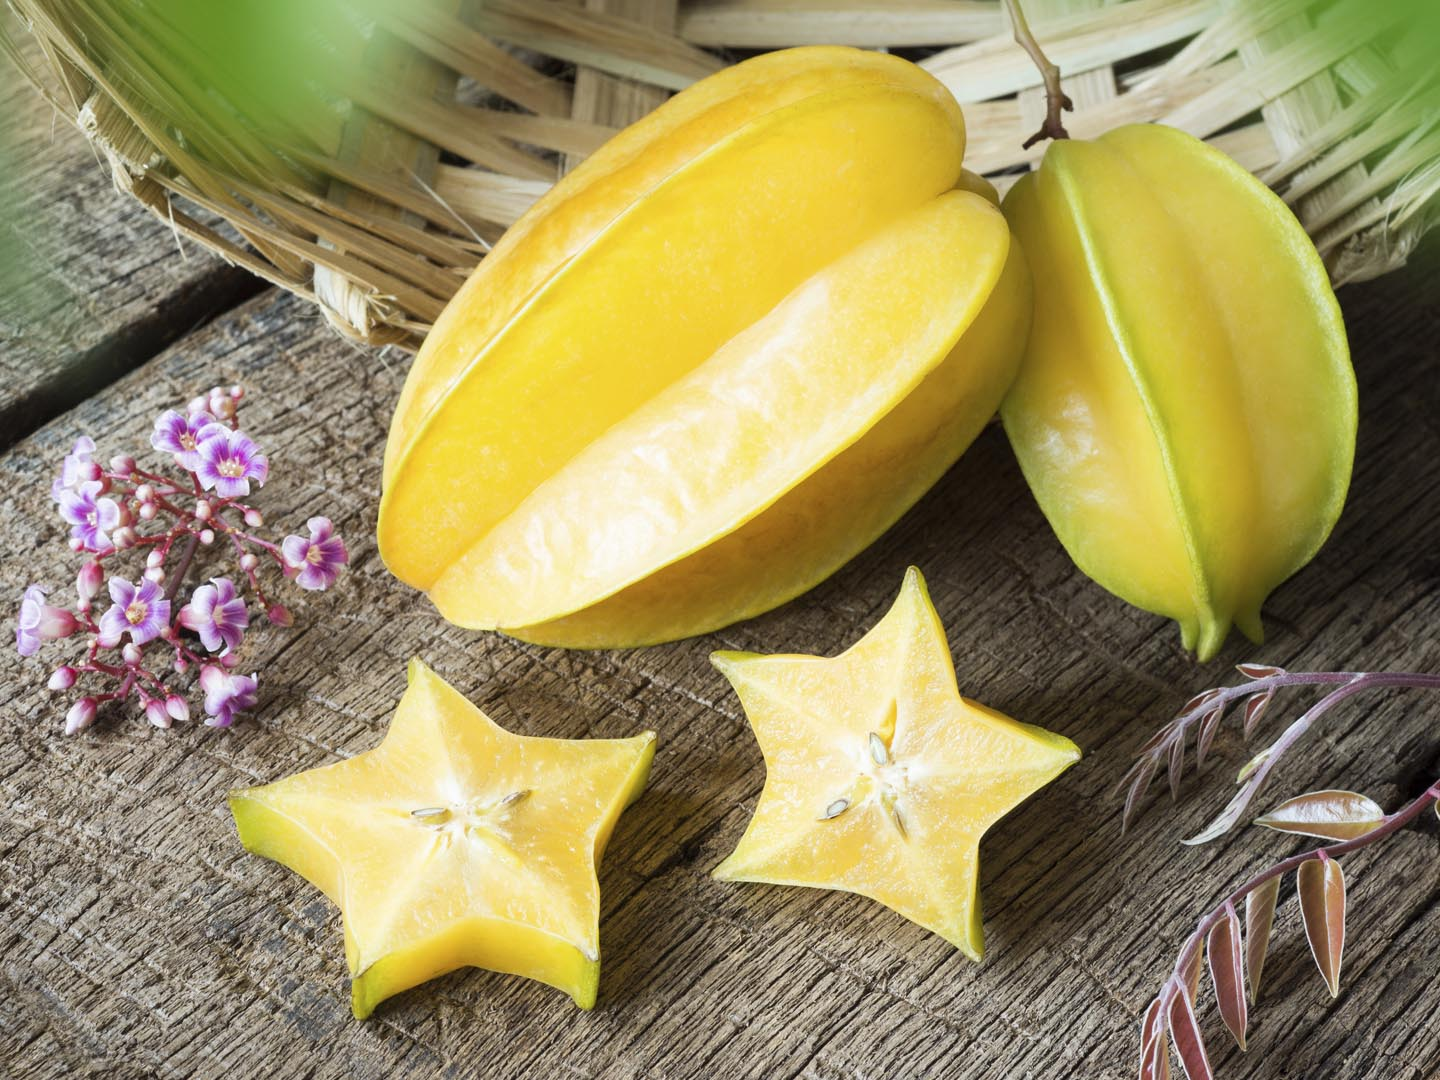 How to Eat a Star Fruit